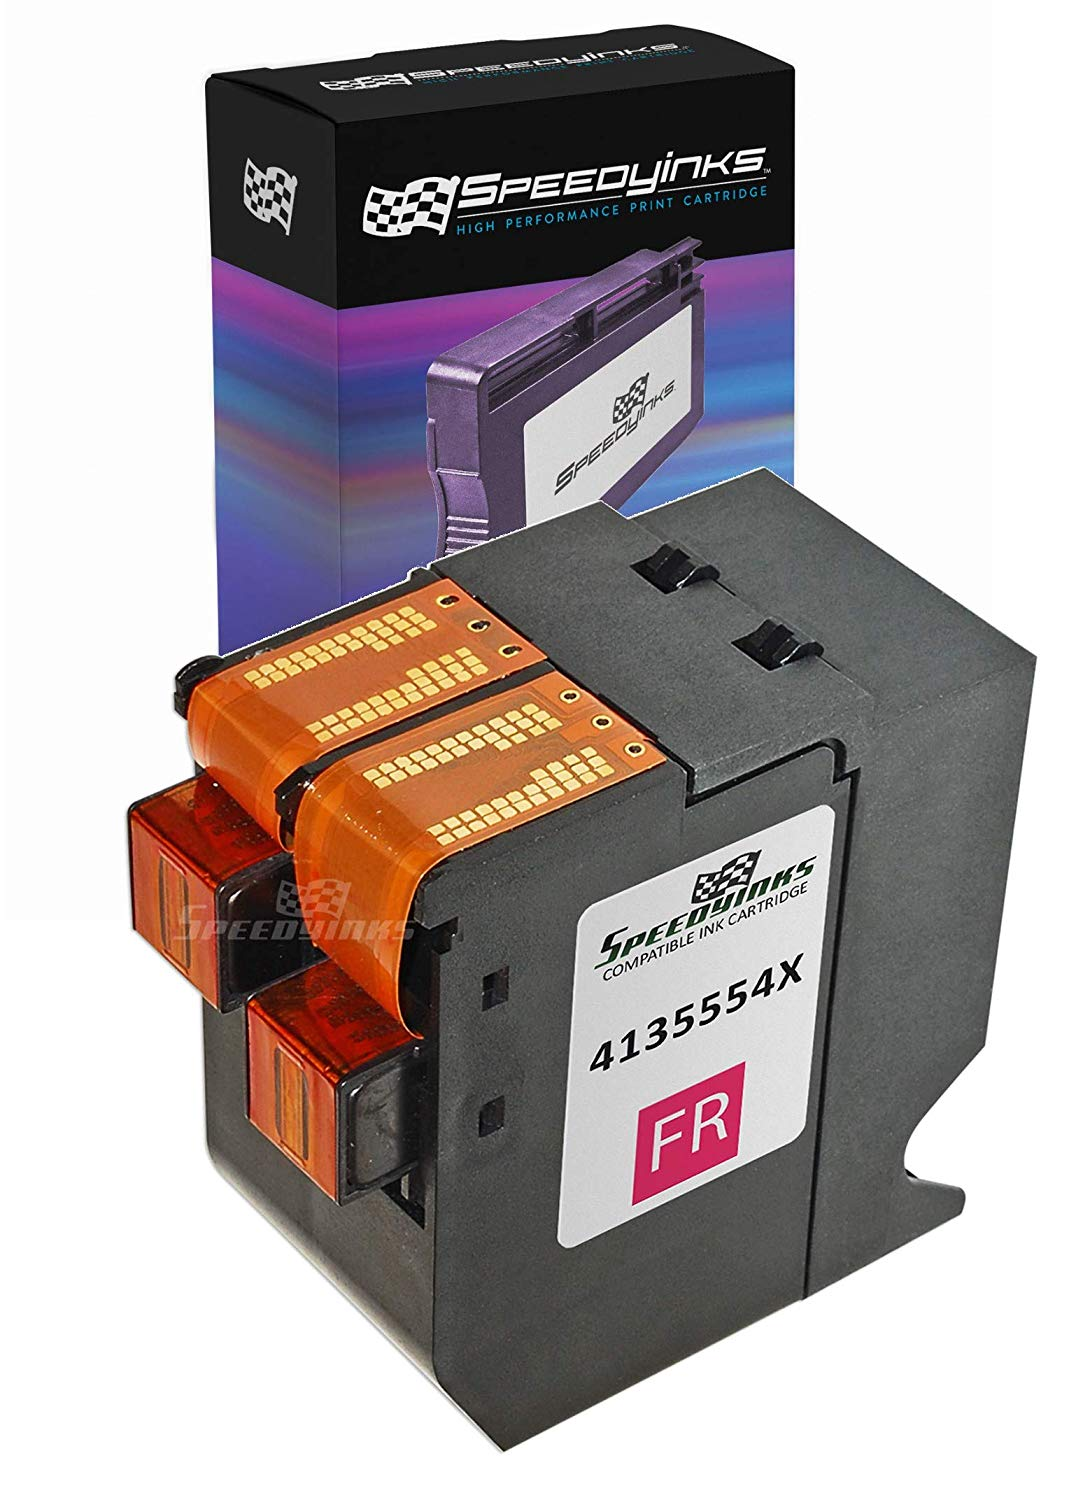 IM350 IM360 IM460 IM440 IM490 /& 600 Series Mail Systems. Hasler # IMINK34 Ink Cartridge for IM330 IM480 IM420